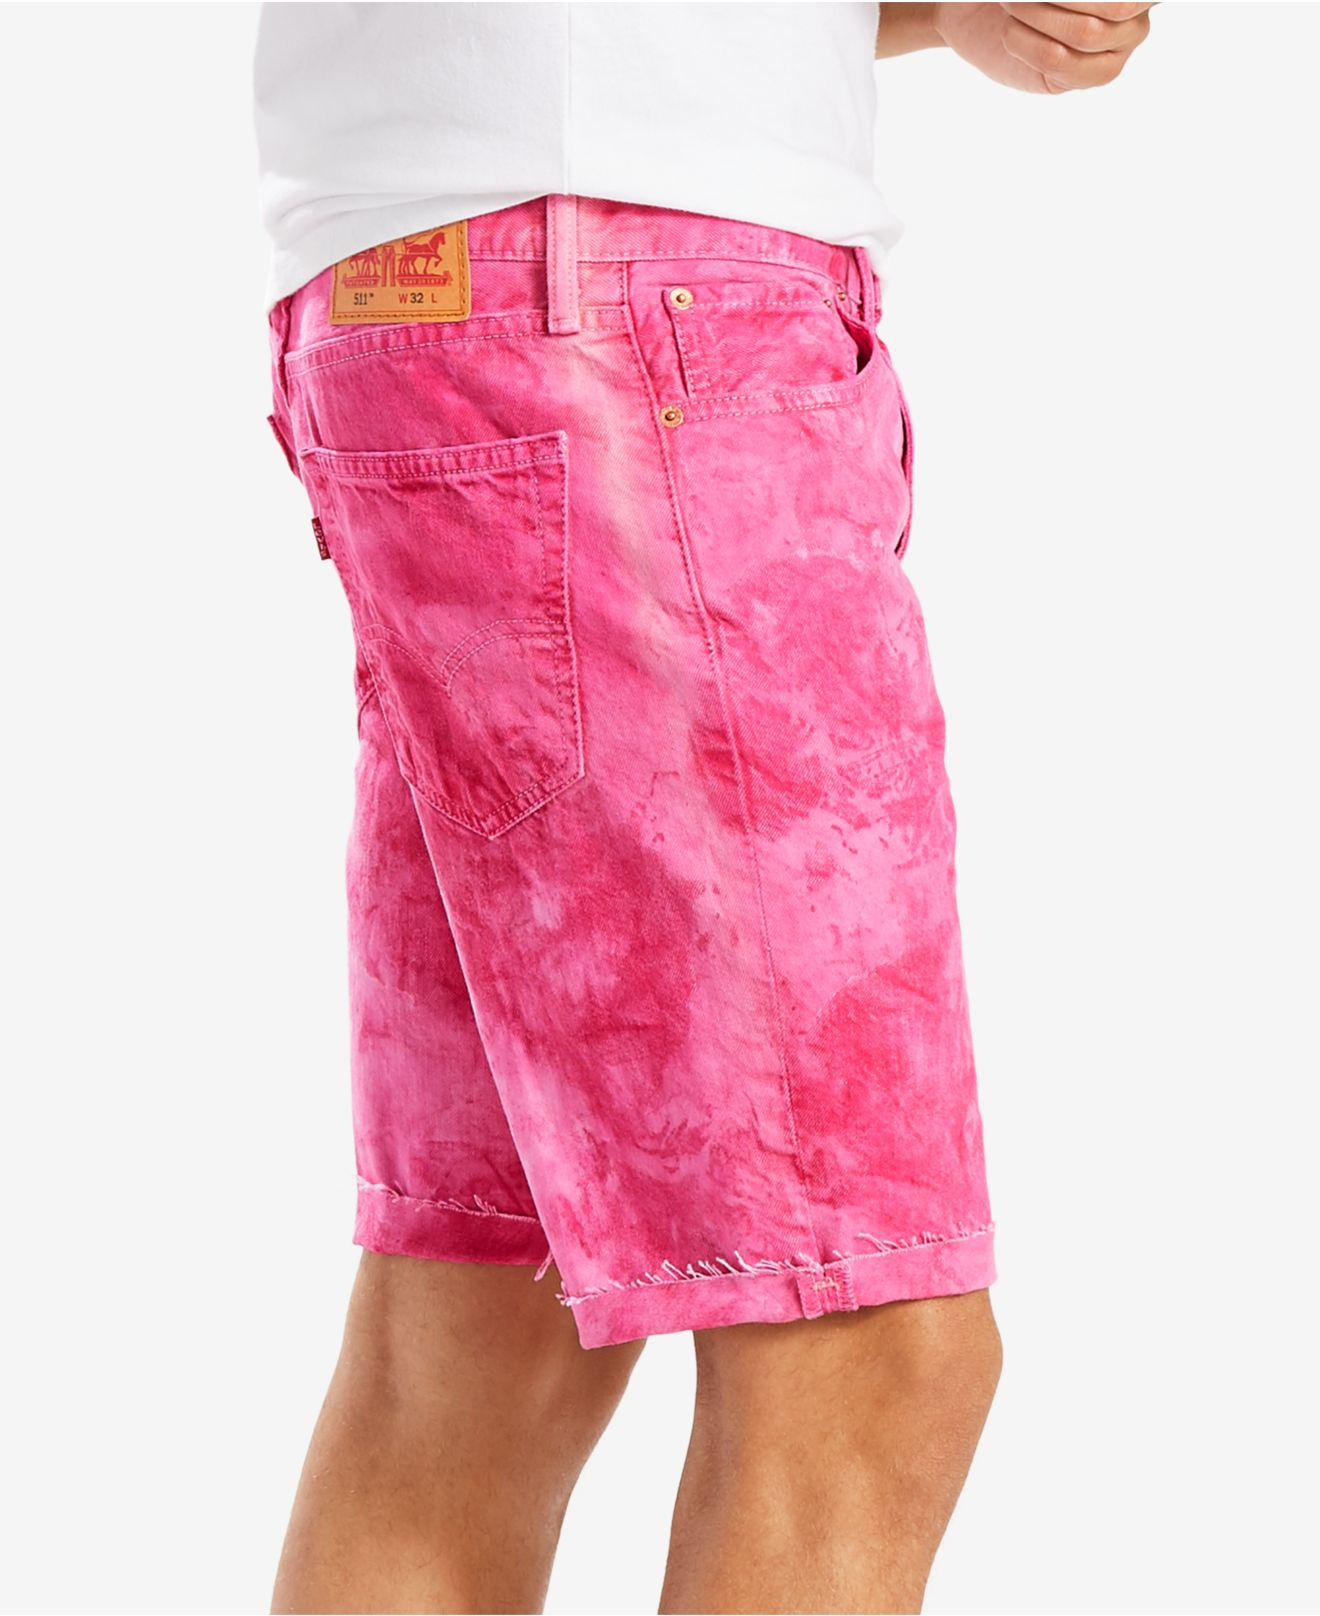 3e8594aa Levi's 511 Slim-fit Cutoff Ripped Jean Shorts in Pink for Men - Lyst